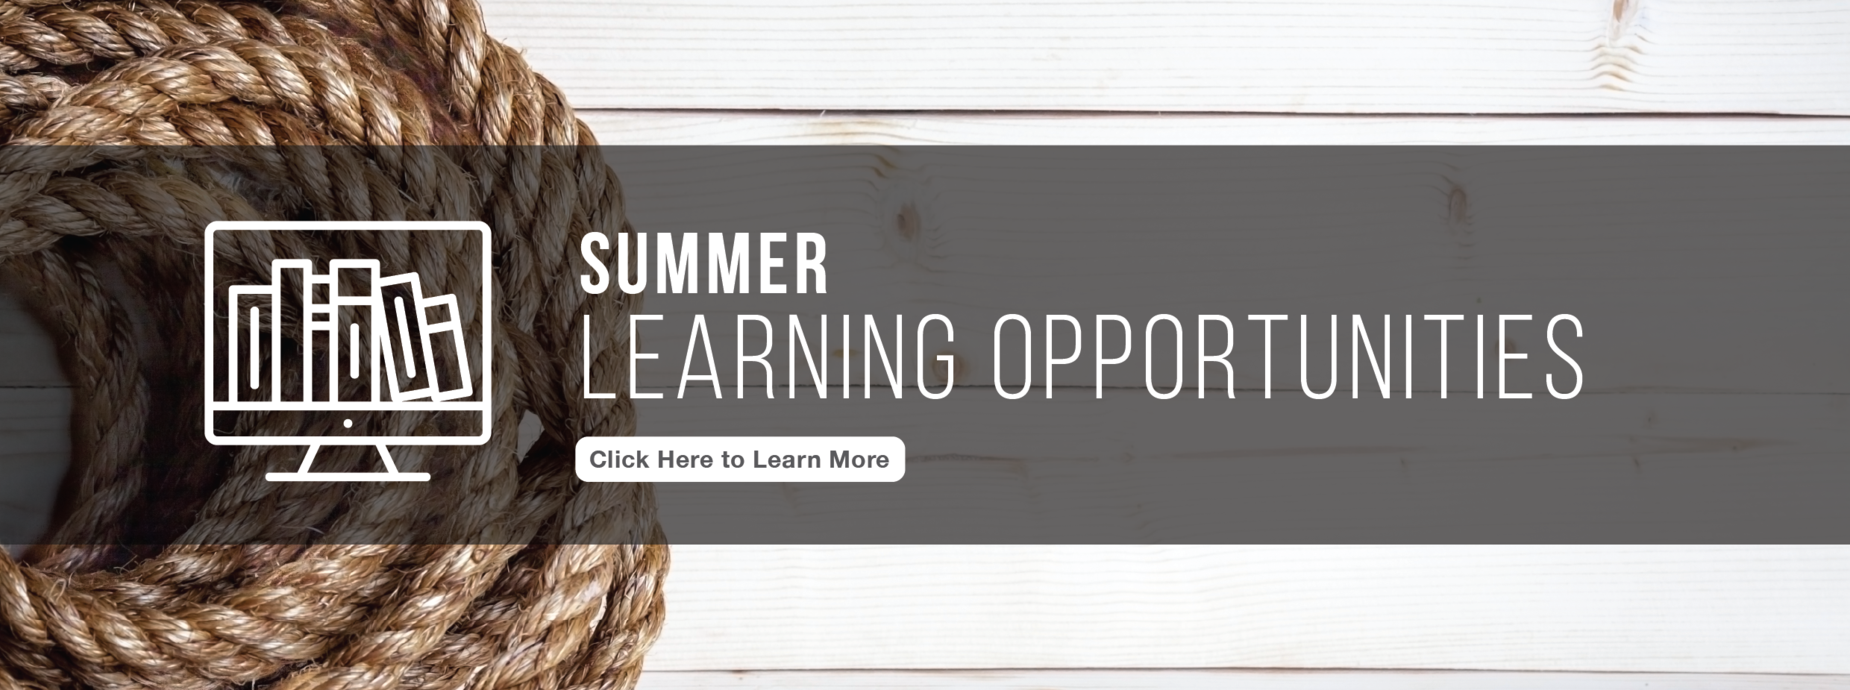 Summer Learning Opportunities — Click Here to Learn More